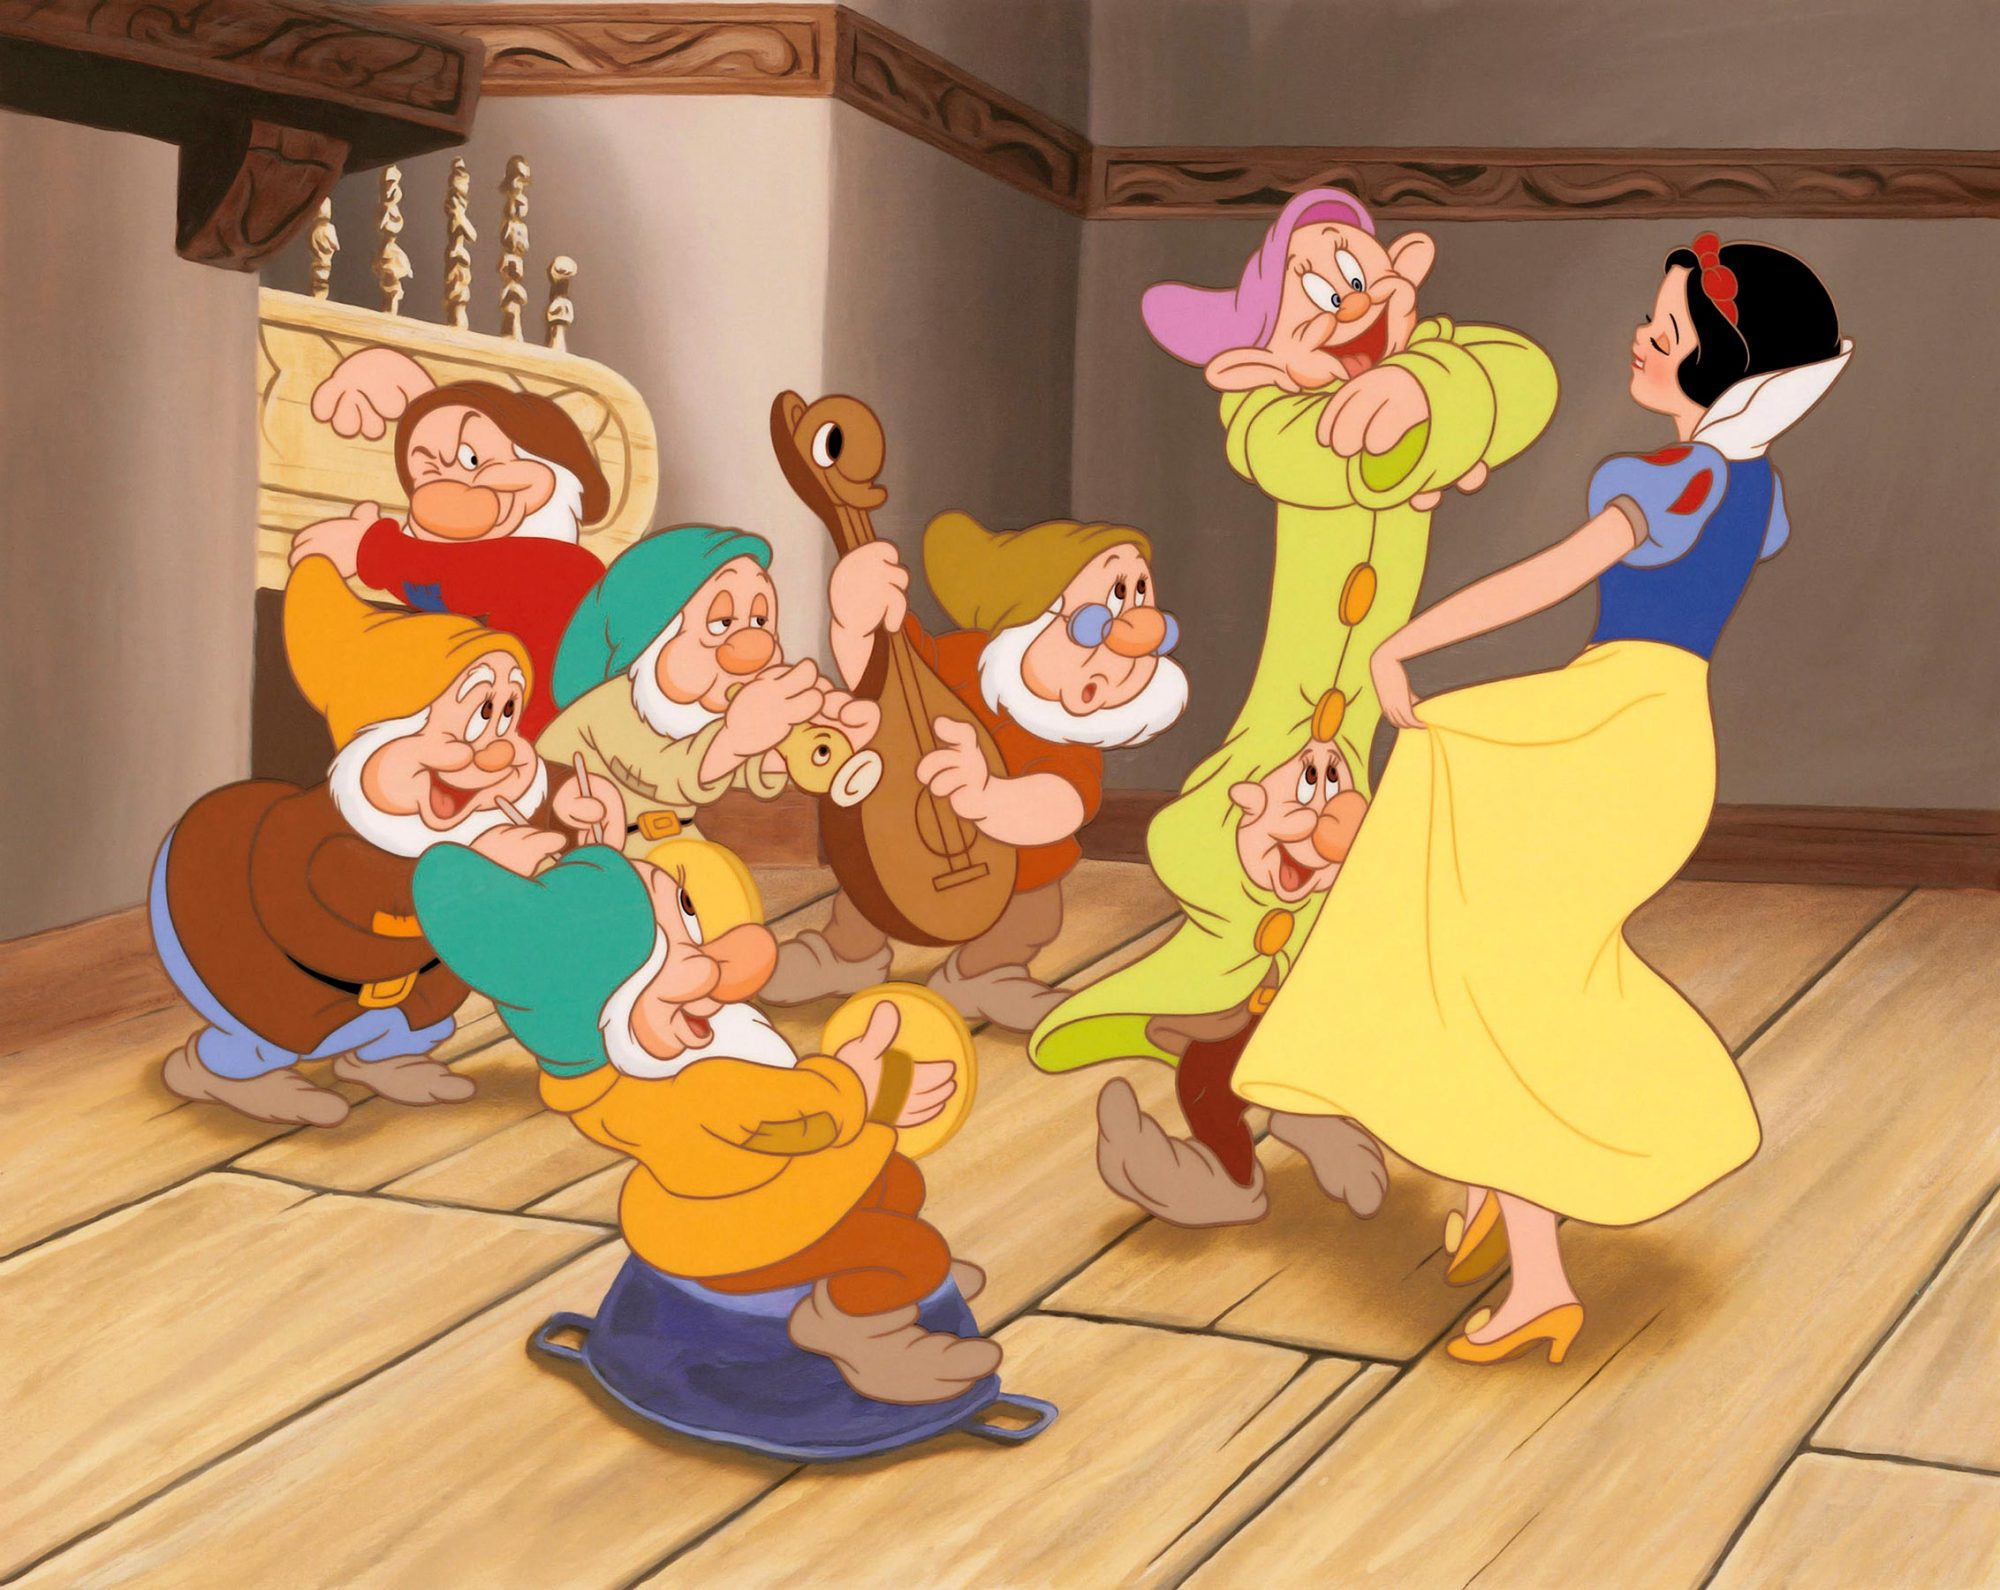 SNOW WHITE AND THE SEVEN DWARFS, Grumpy (seated), Sneezy (cymbals), Happy, Sleepy (horn), Doc (bass